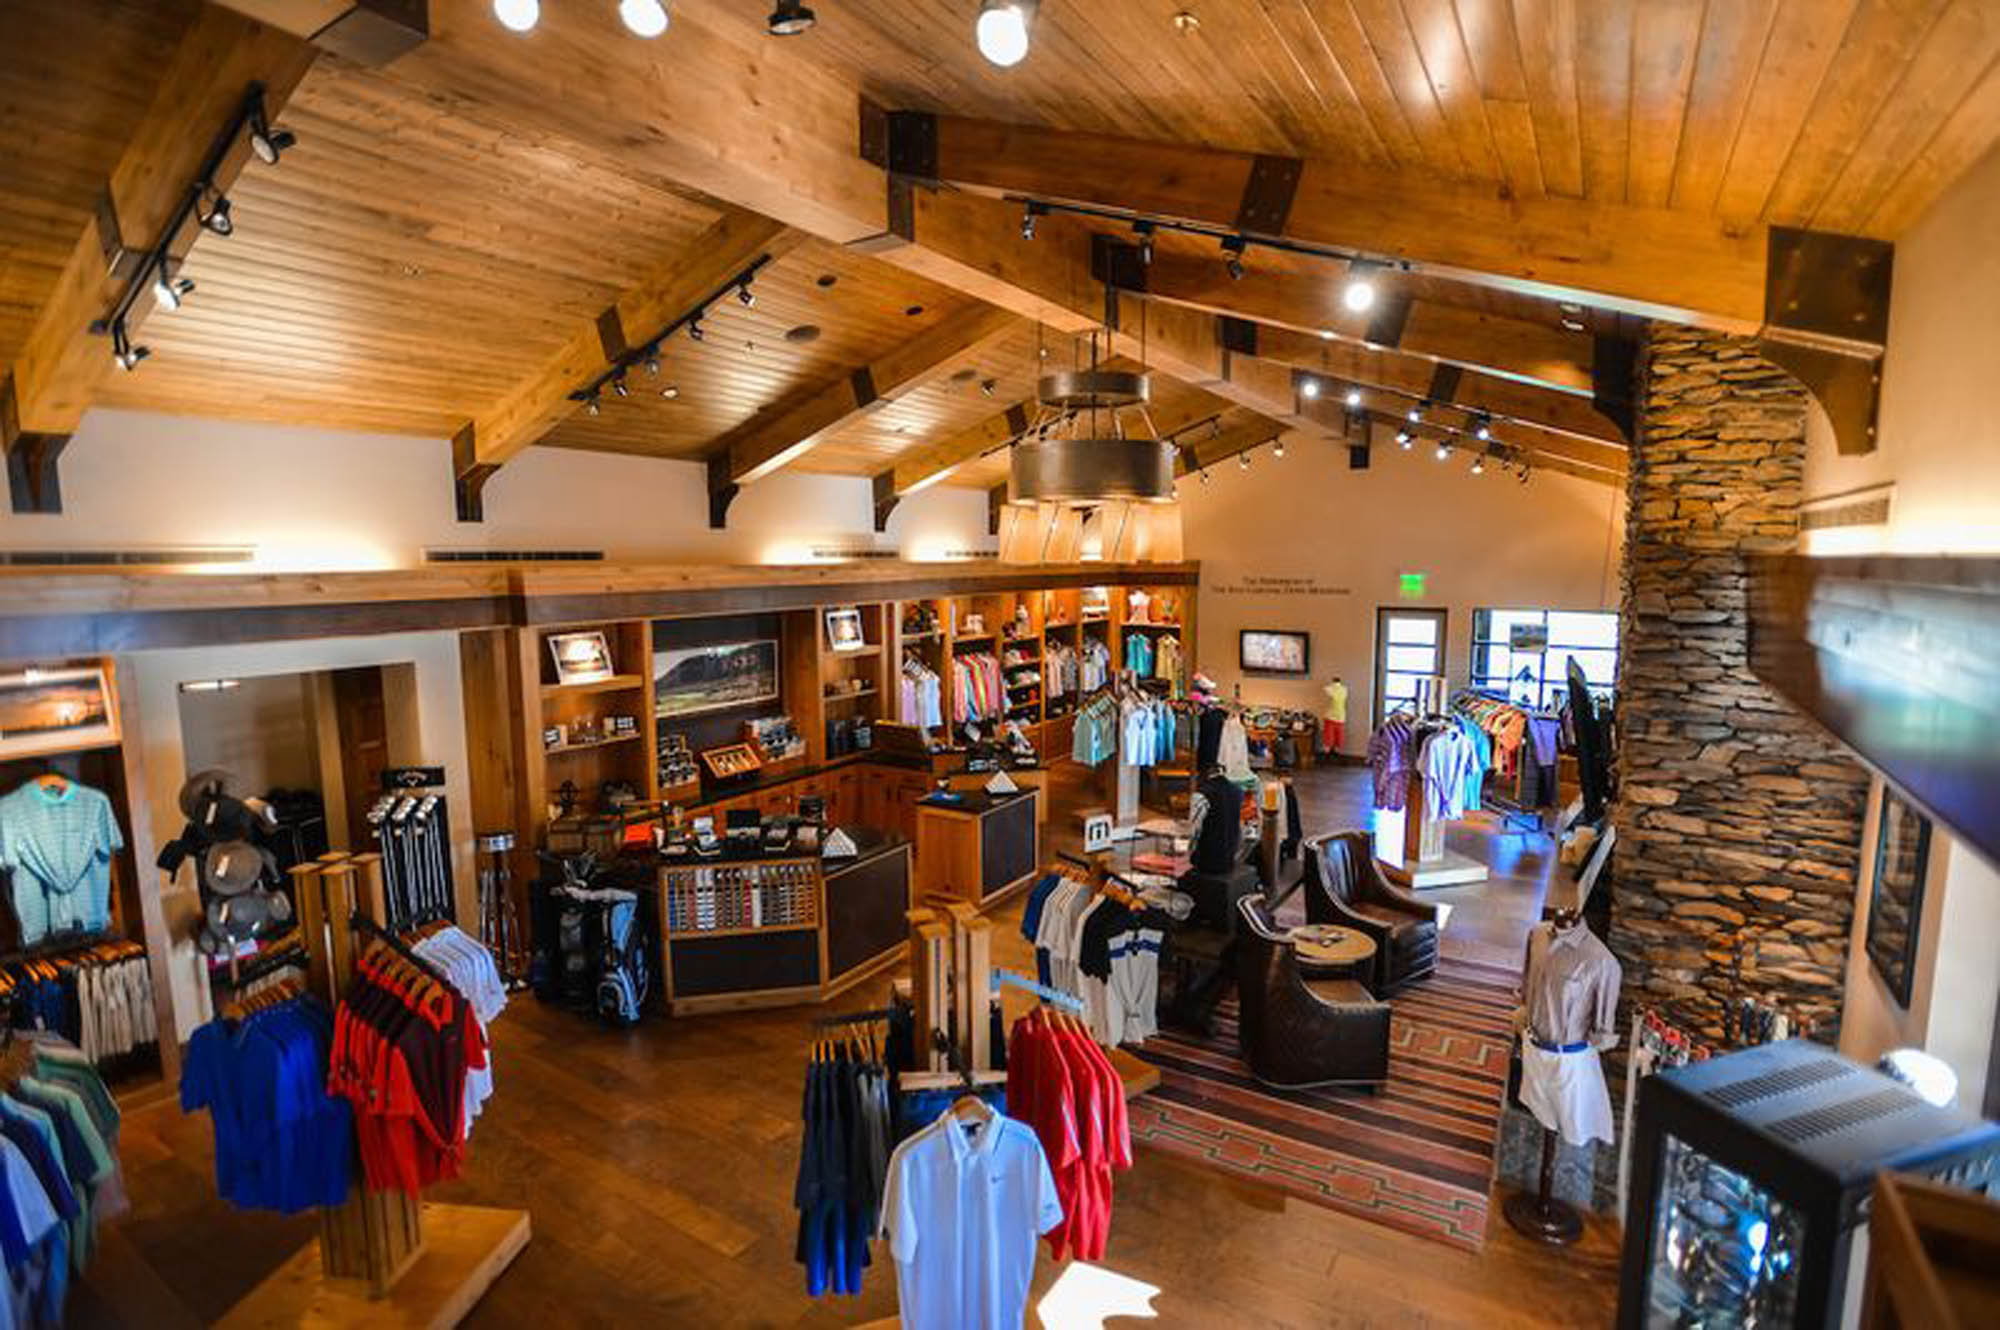 An interior shot of the Golf Shop shows a plethora of hardwood and brick accents